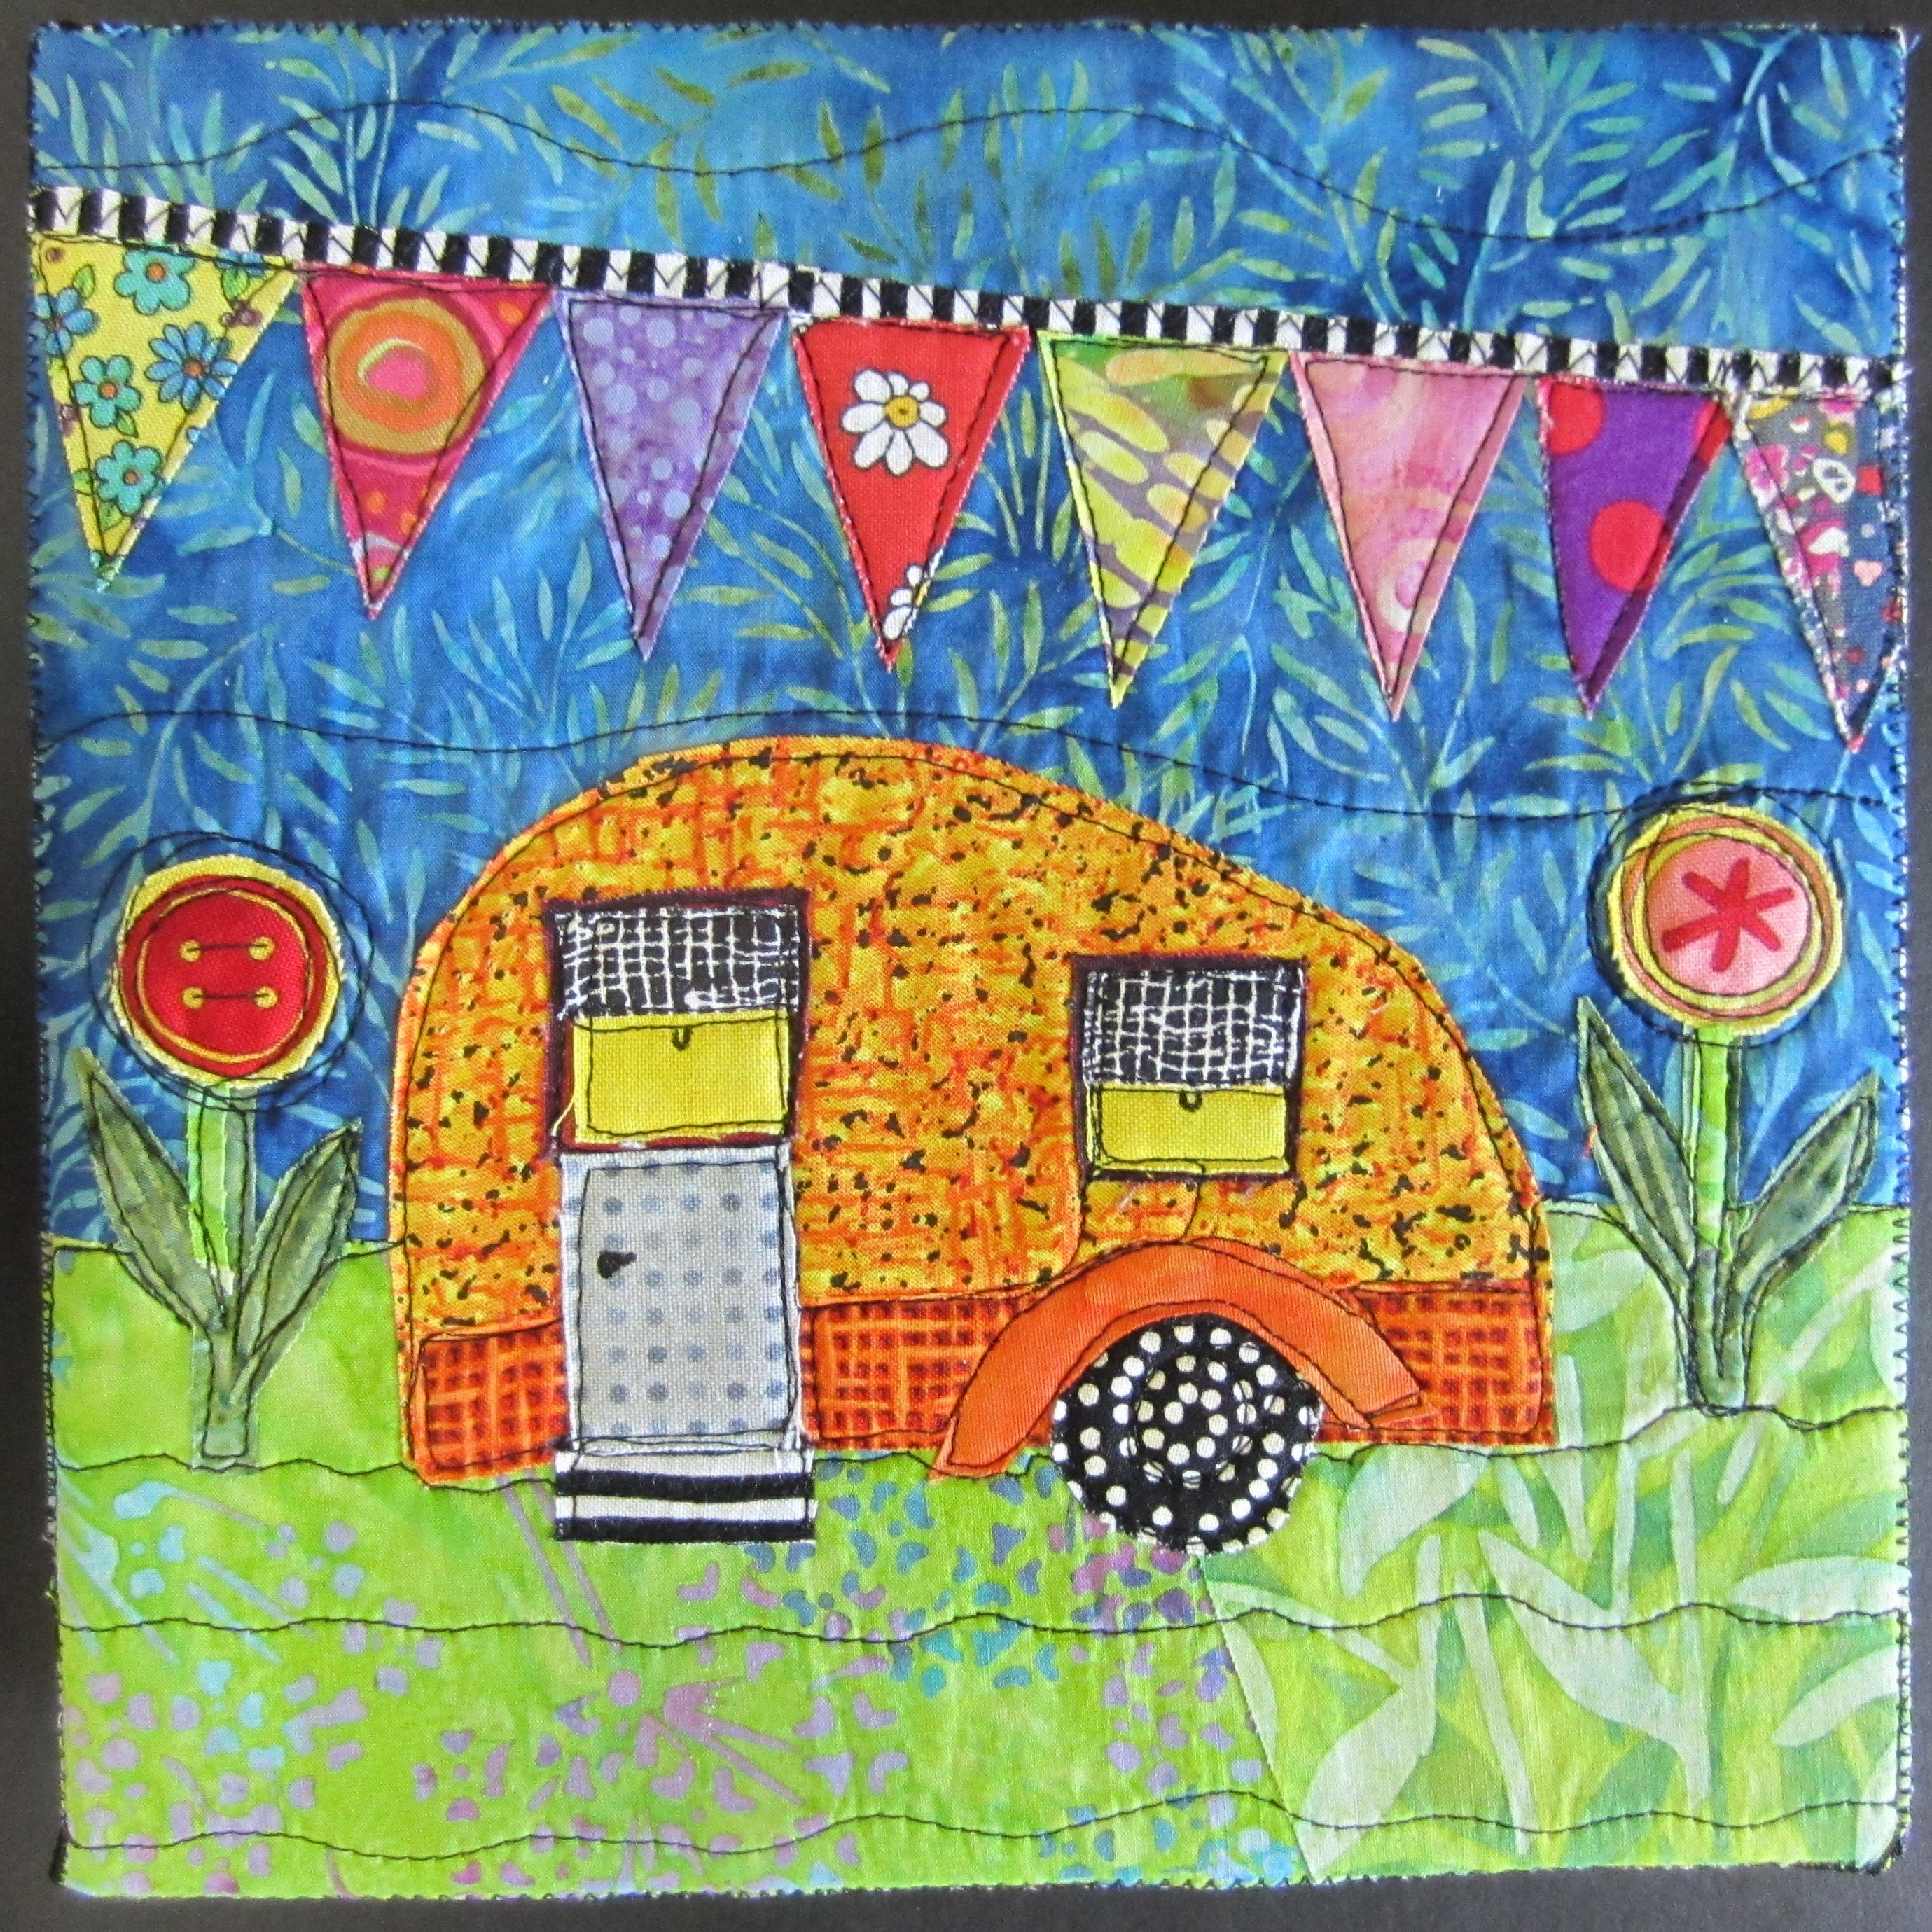 Airstream Dreaming by Jamie Fingal http://www.artboxcsa.com/